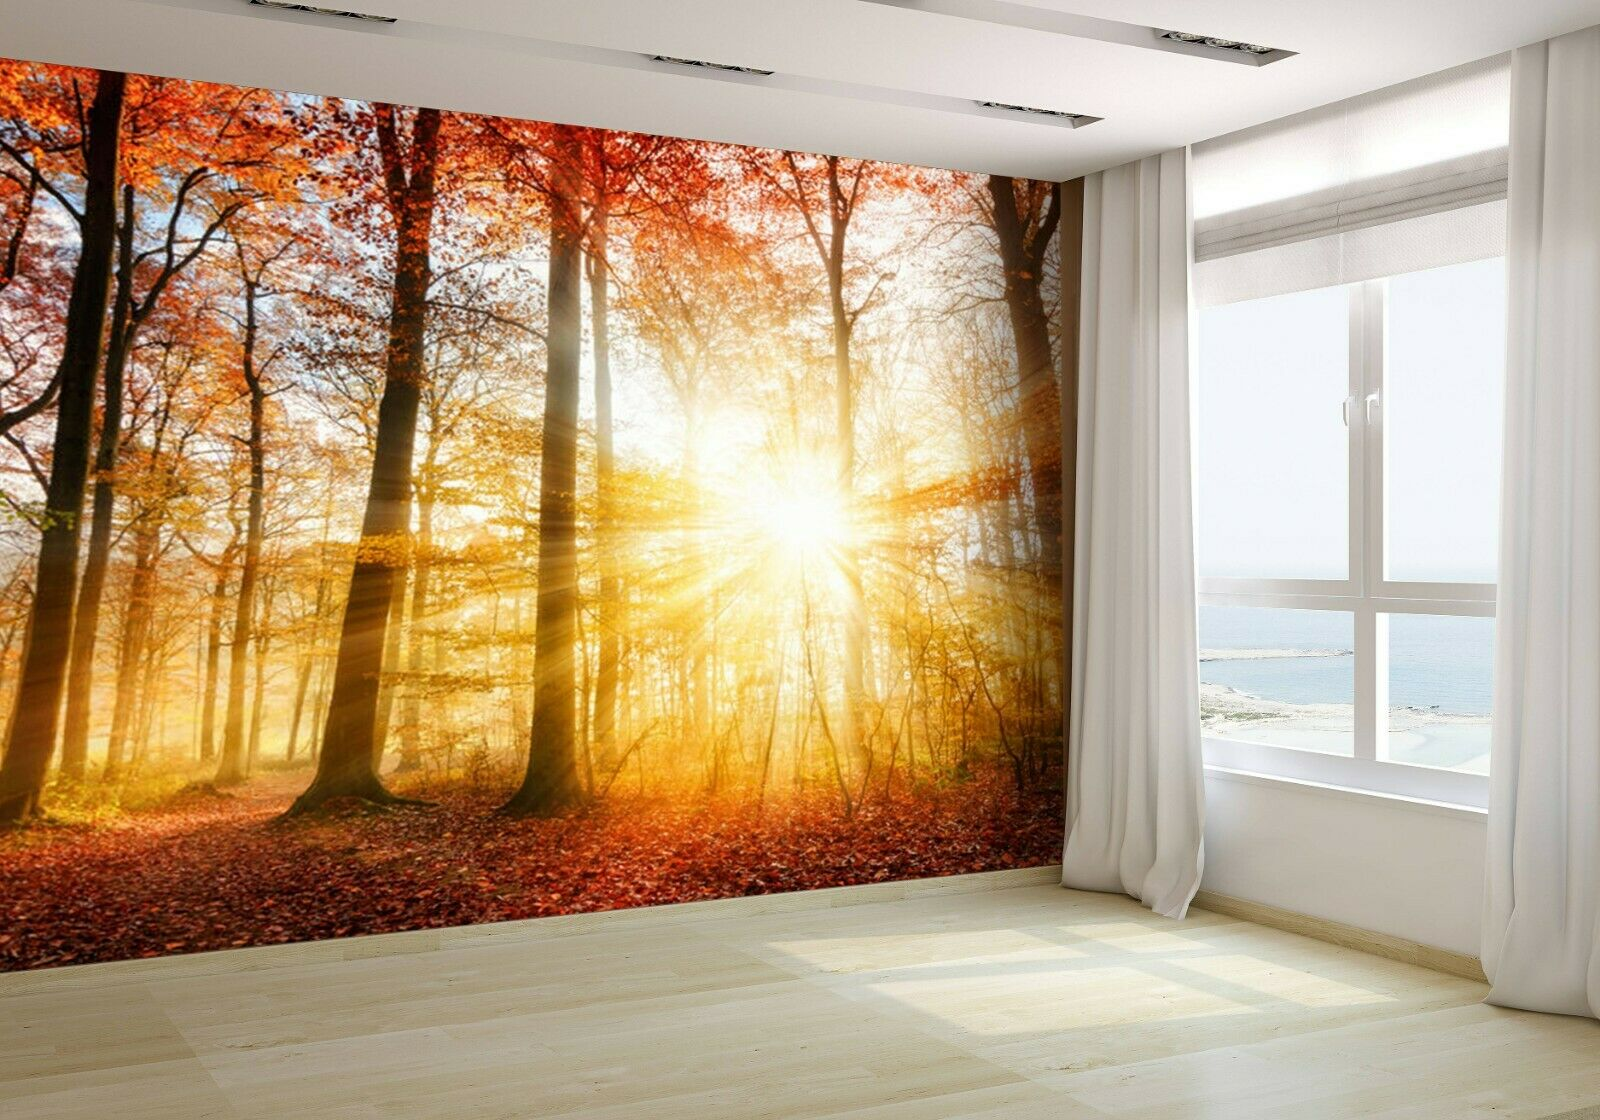 Warm Autumn Scenery in a Forest Wallpaper Mural Photo 45080526 budget paper